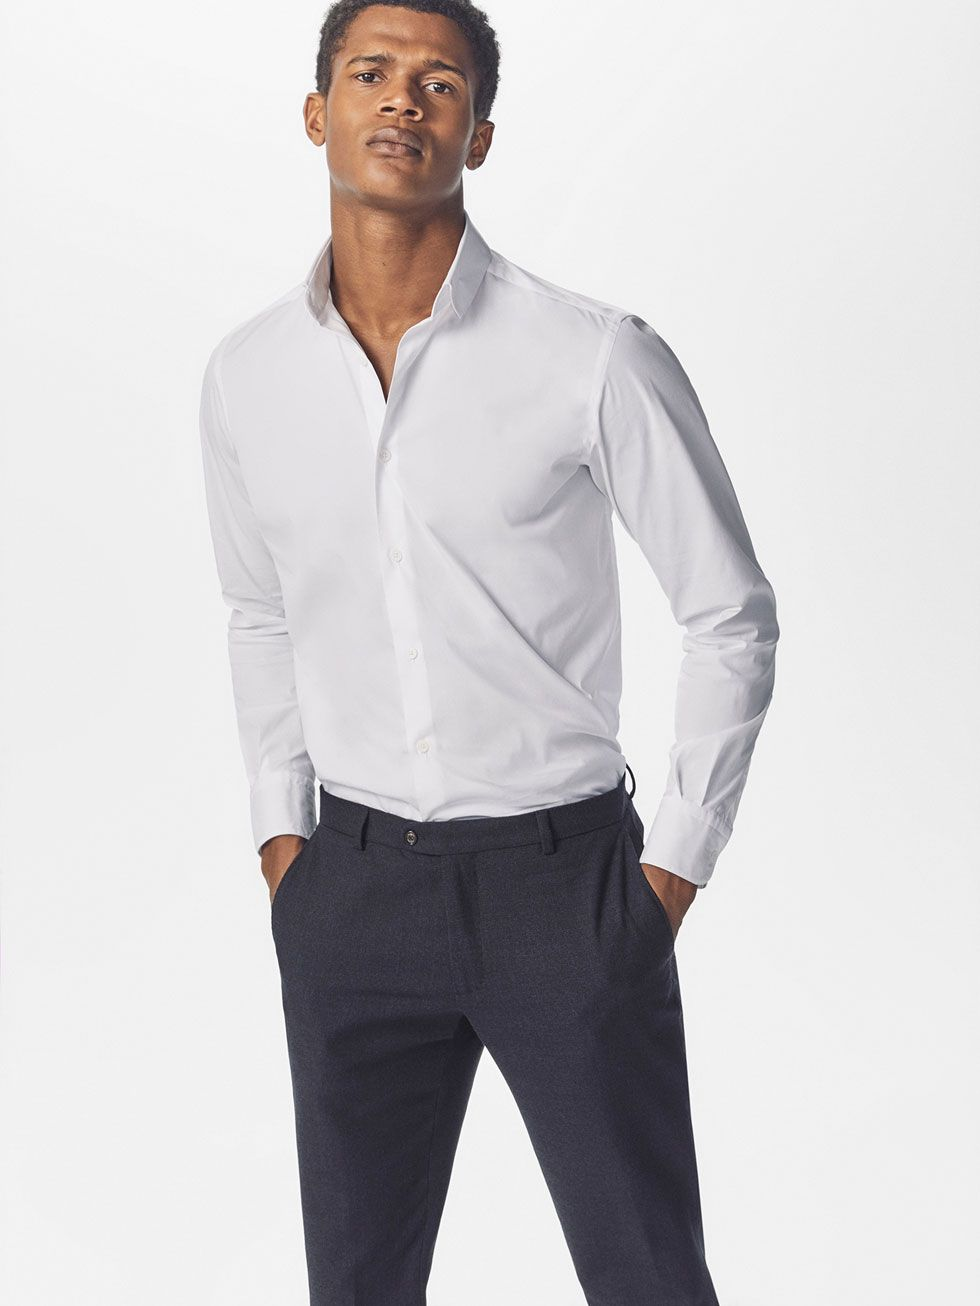 Autumn Spring summer 2017 Men´s SLIM FIT OXFORD SHIRT at Massimo Dutti for  65.5